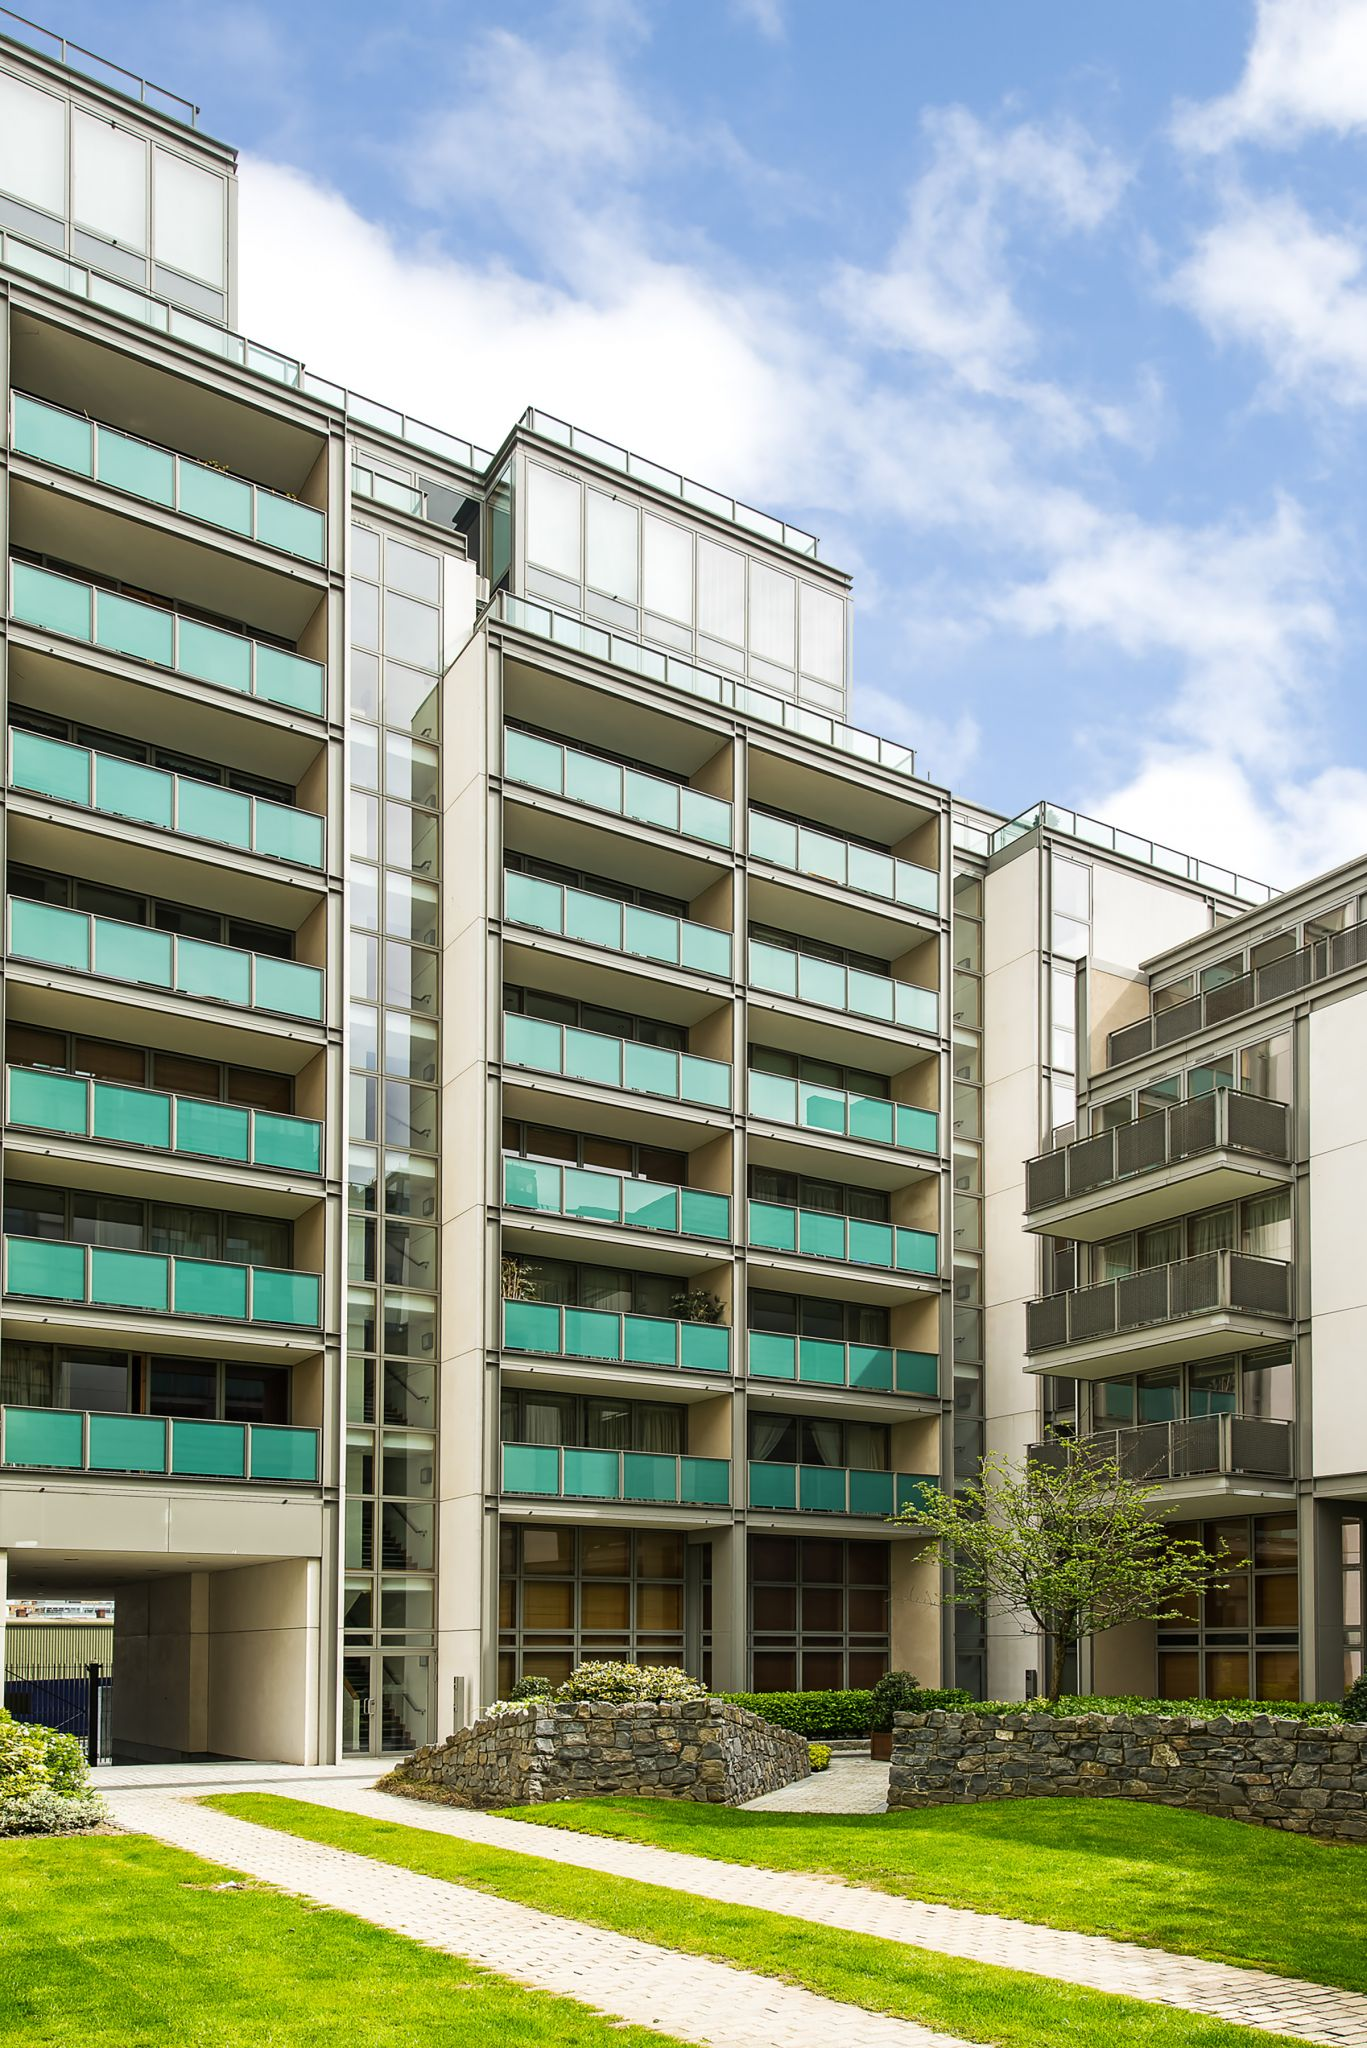 17 pakenham house spencer dock ifsc dublin 1 owen for 1 mcleish terrace pakenham